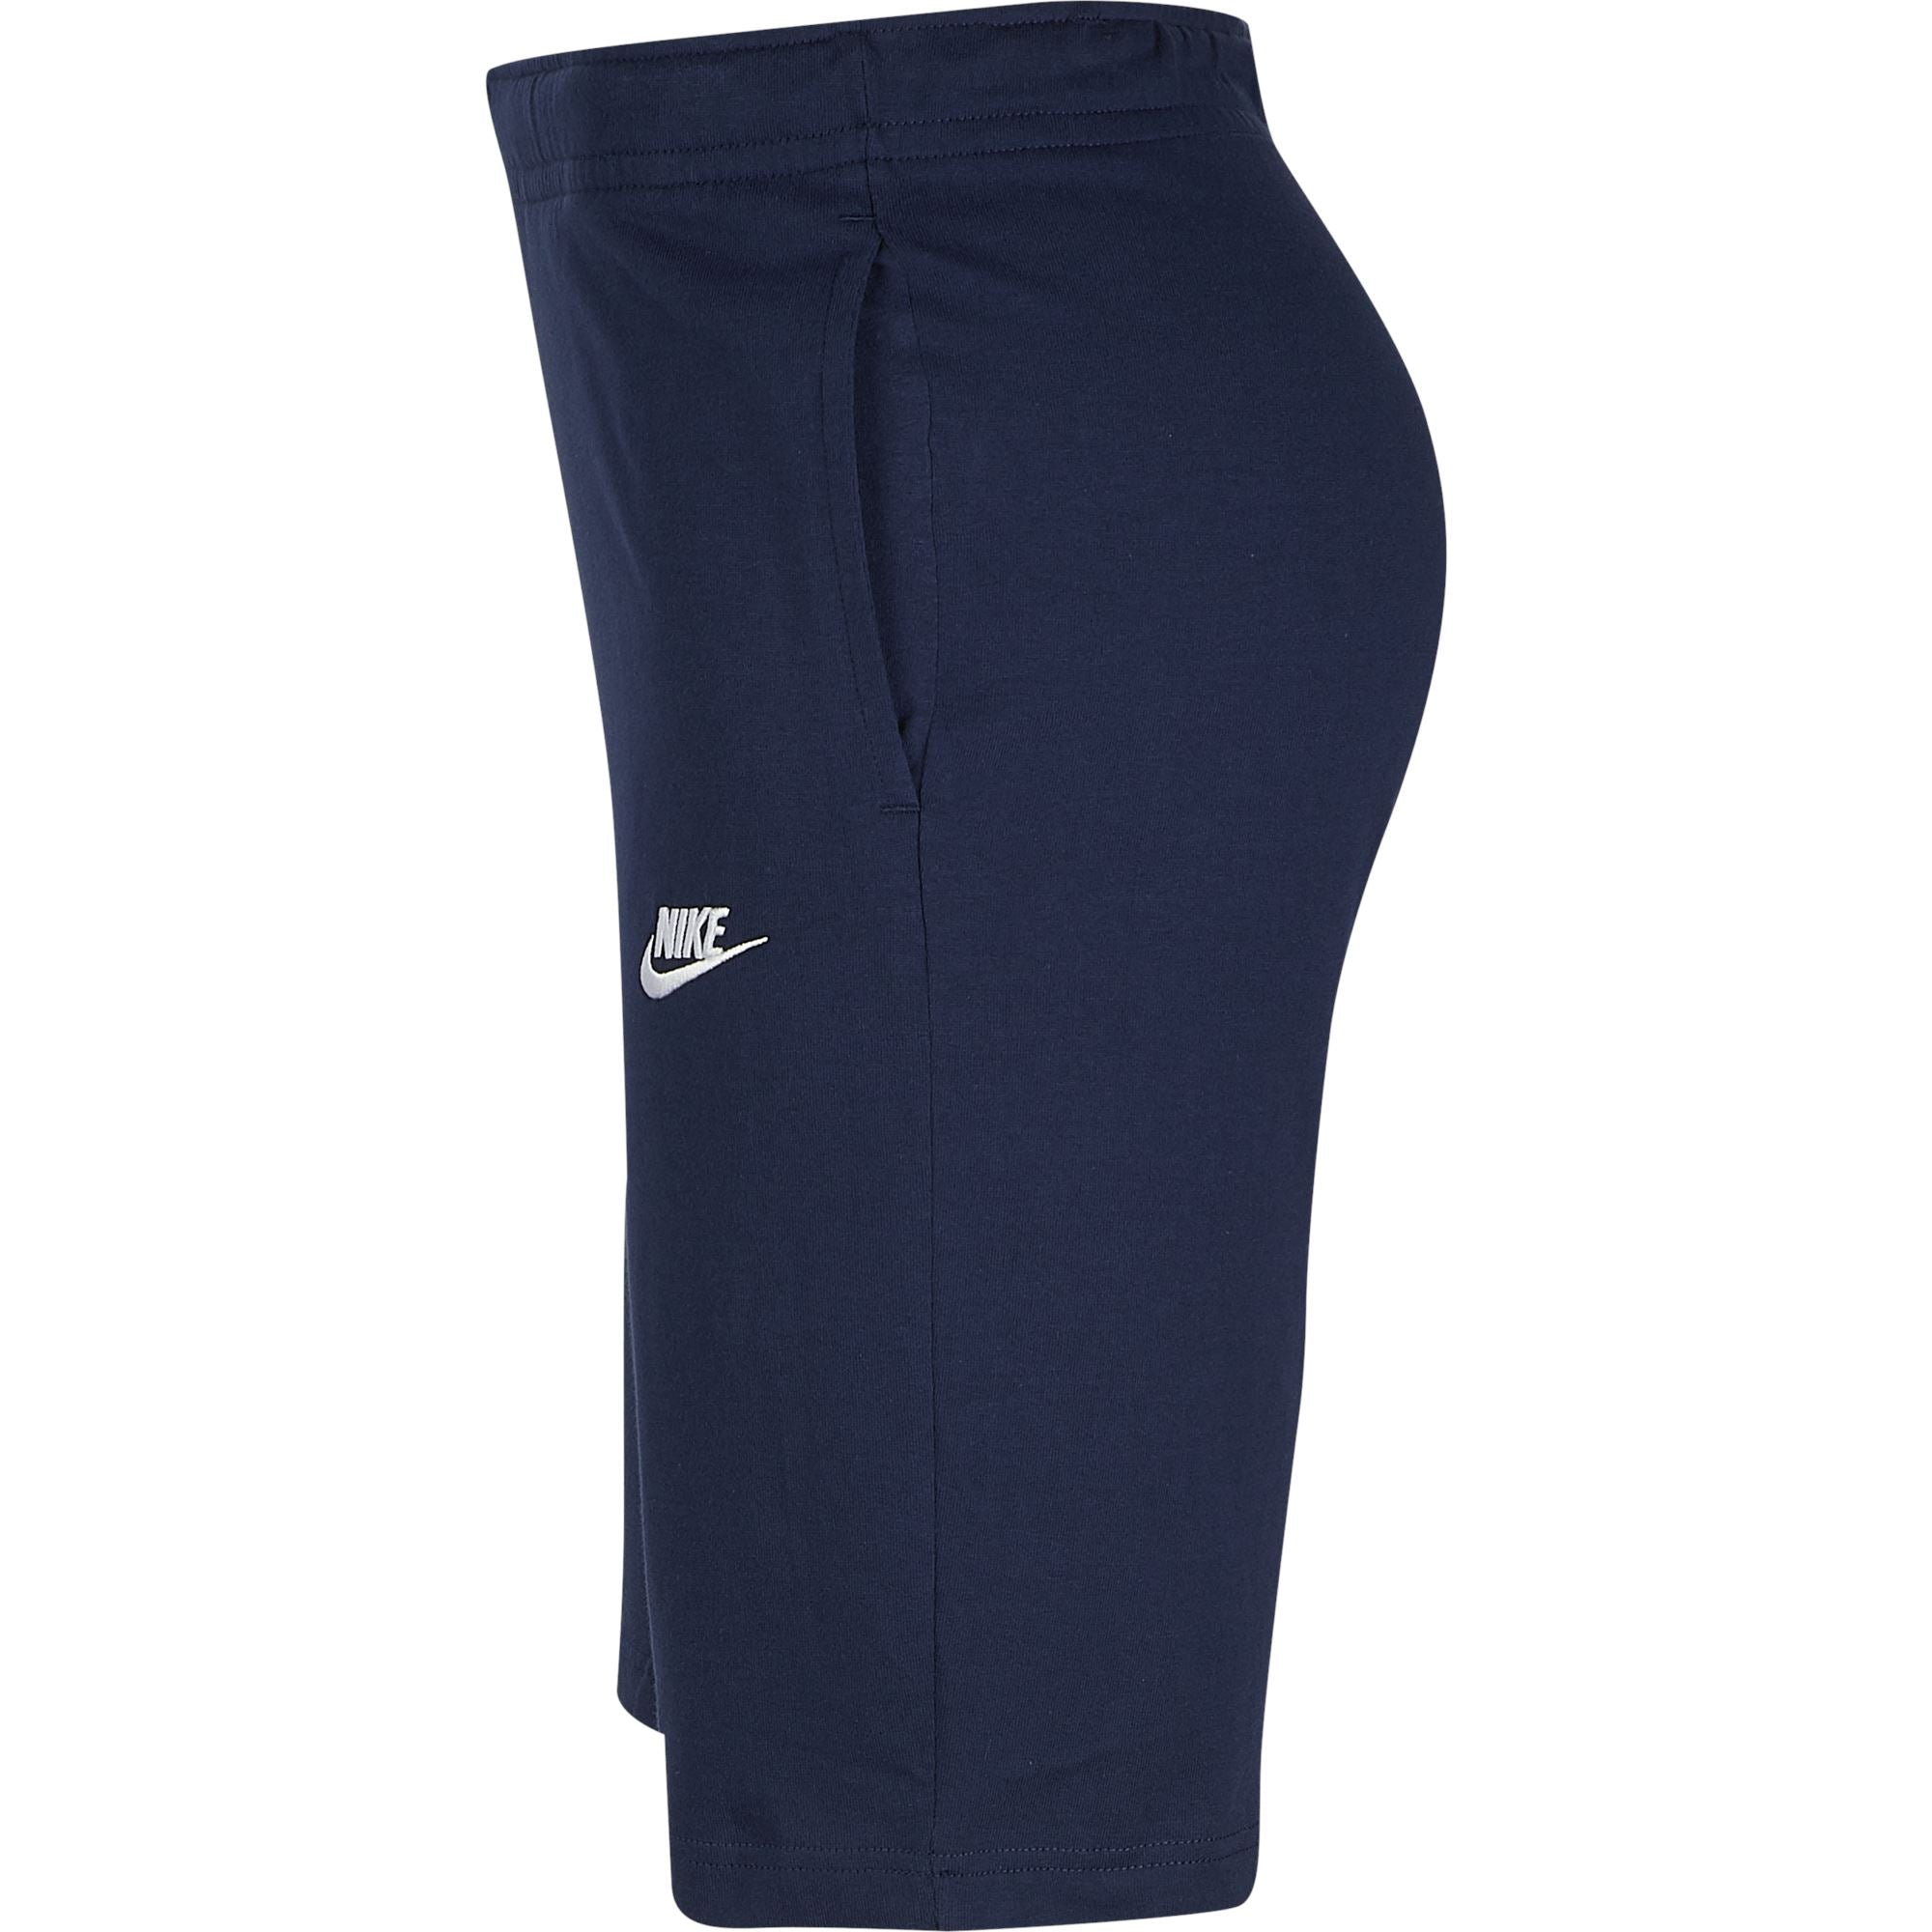 Nike Mens Sportswear Short - Midnight Navy/White Q3NIKE Nike